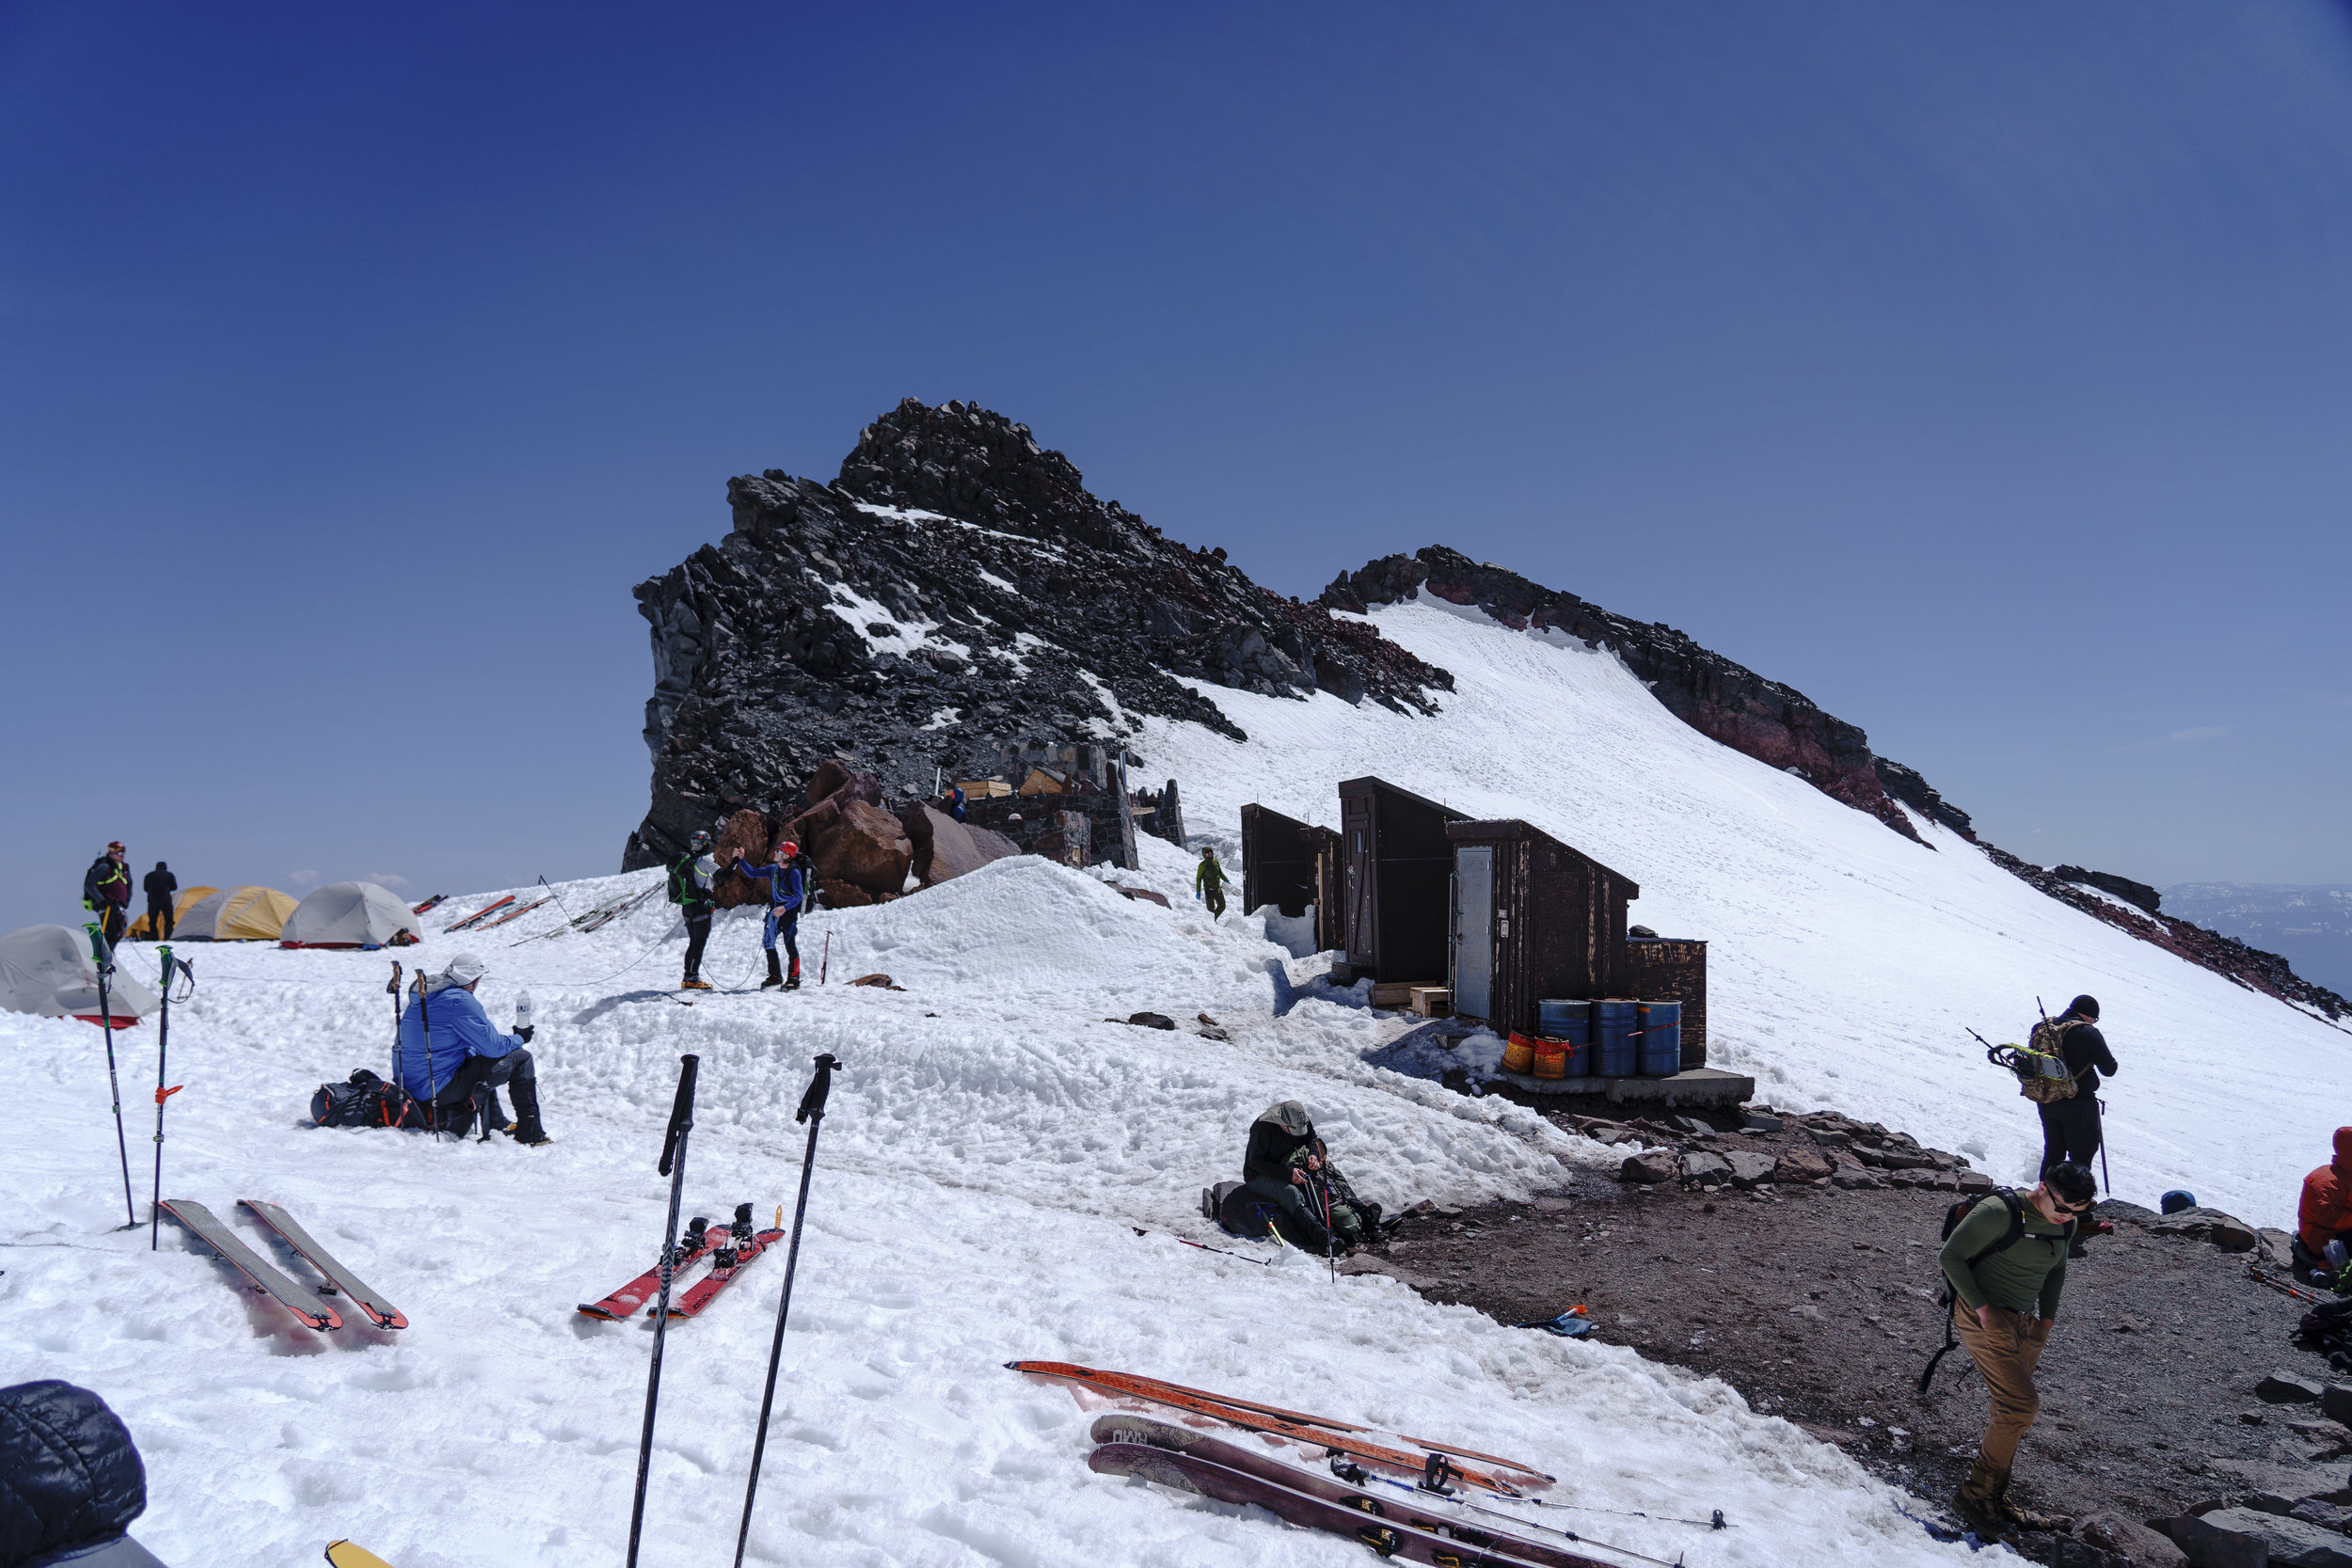 There are even pit toilets at Camp Muir!